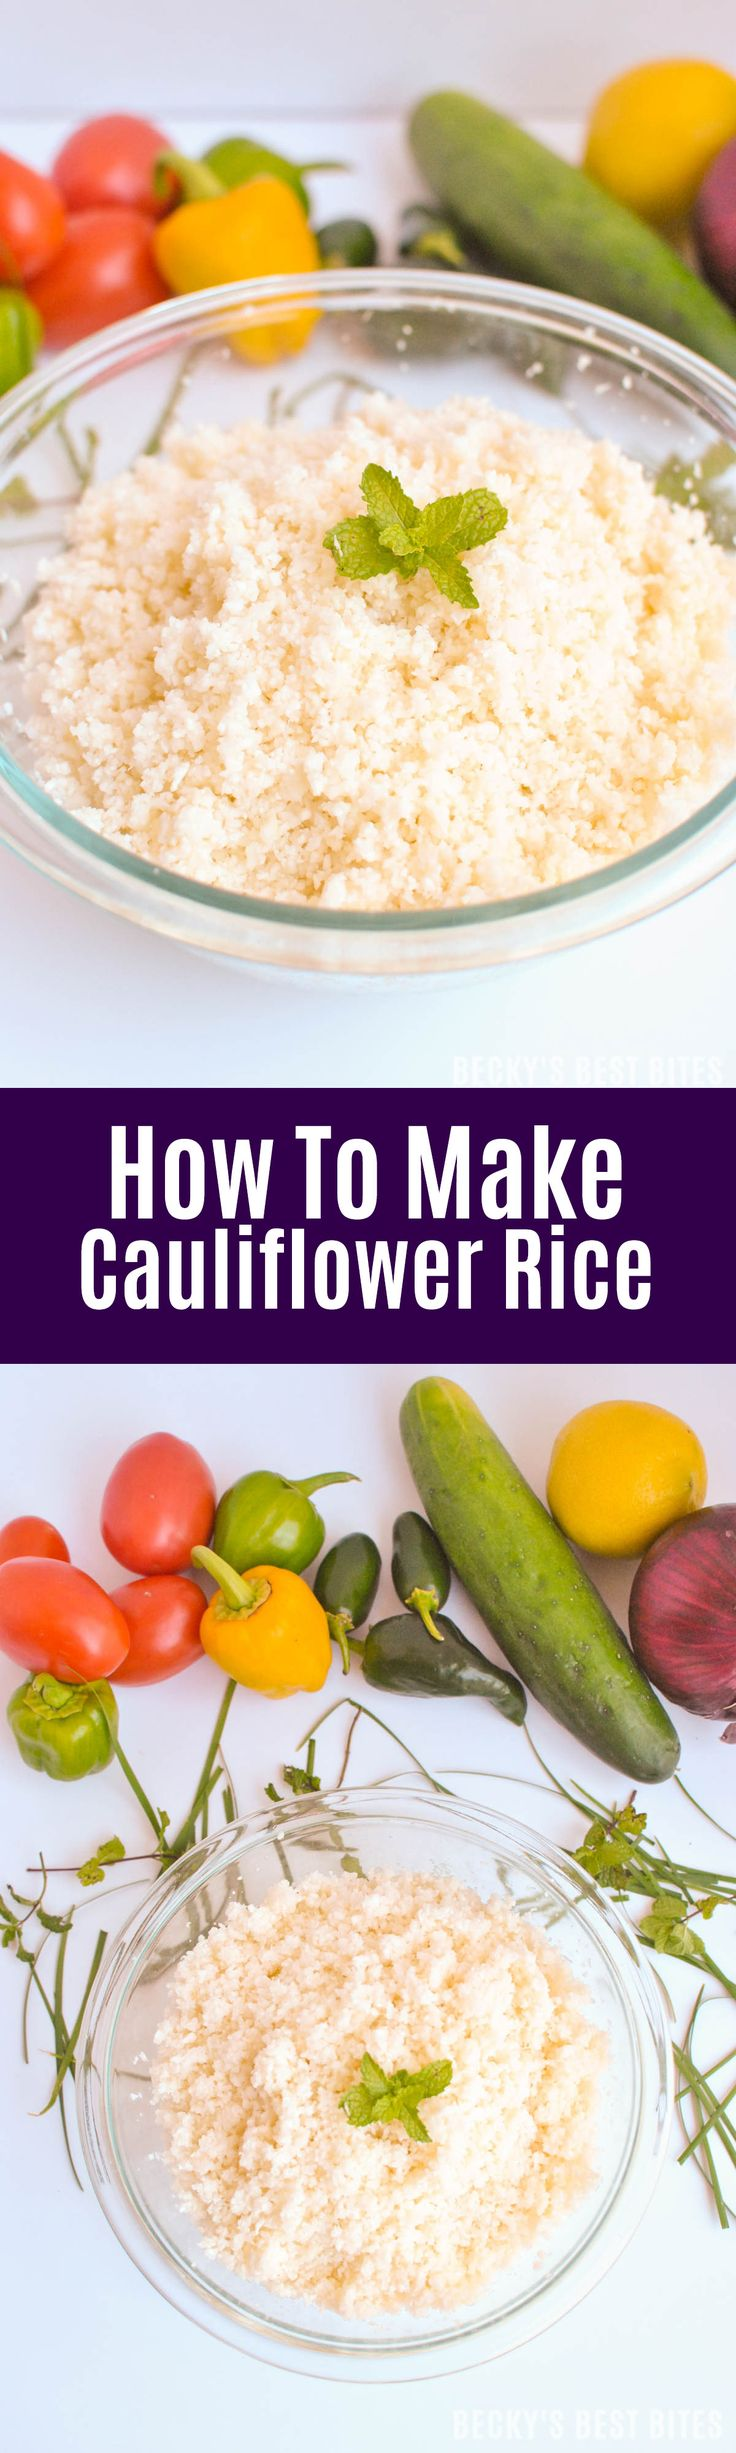 How To Make Cauliflower Rice or Couscous is a healthy low carb, high fiber alternative. Satisfy even the most grain-loving individuals with this easy swap. | beckysbestbites.com